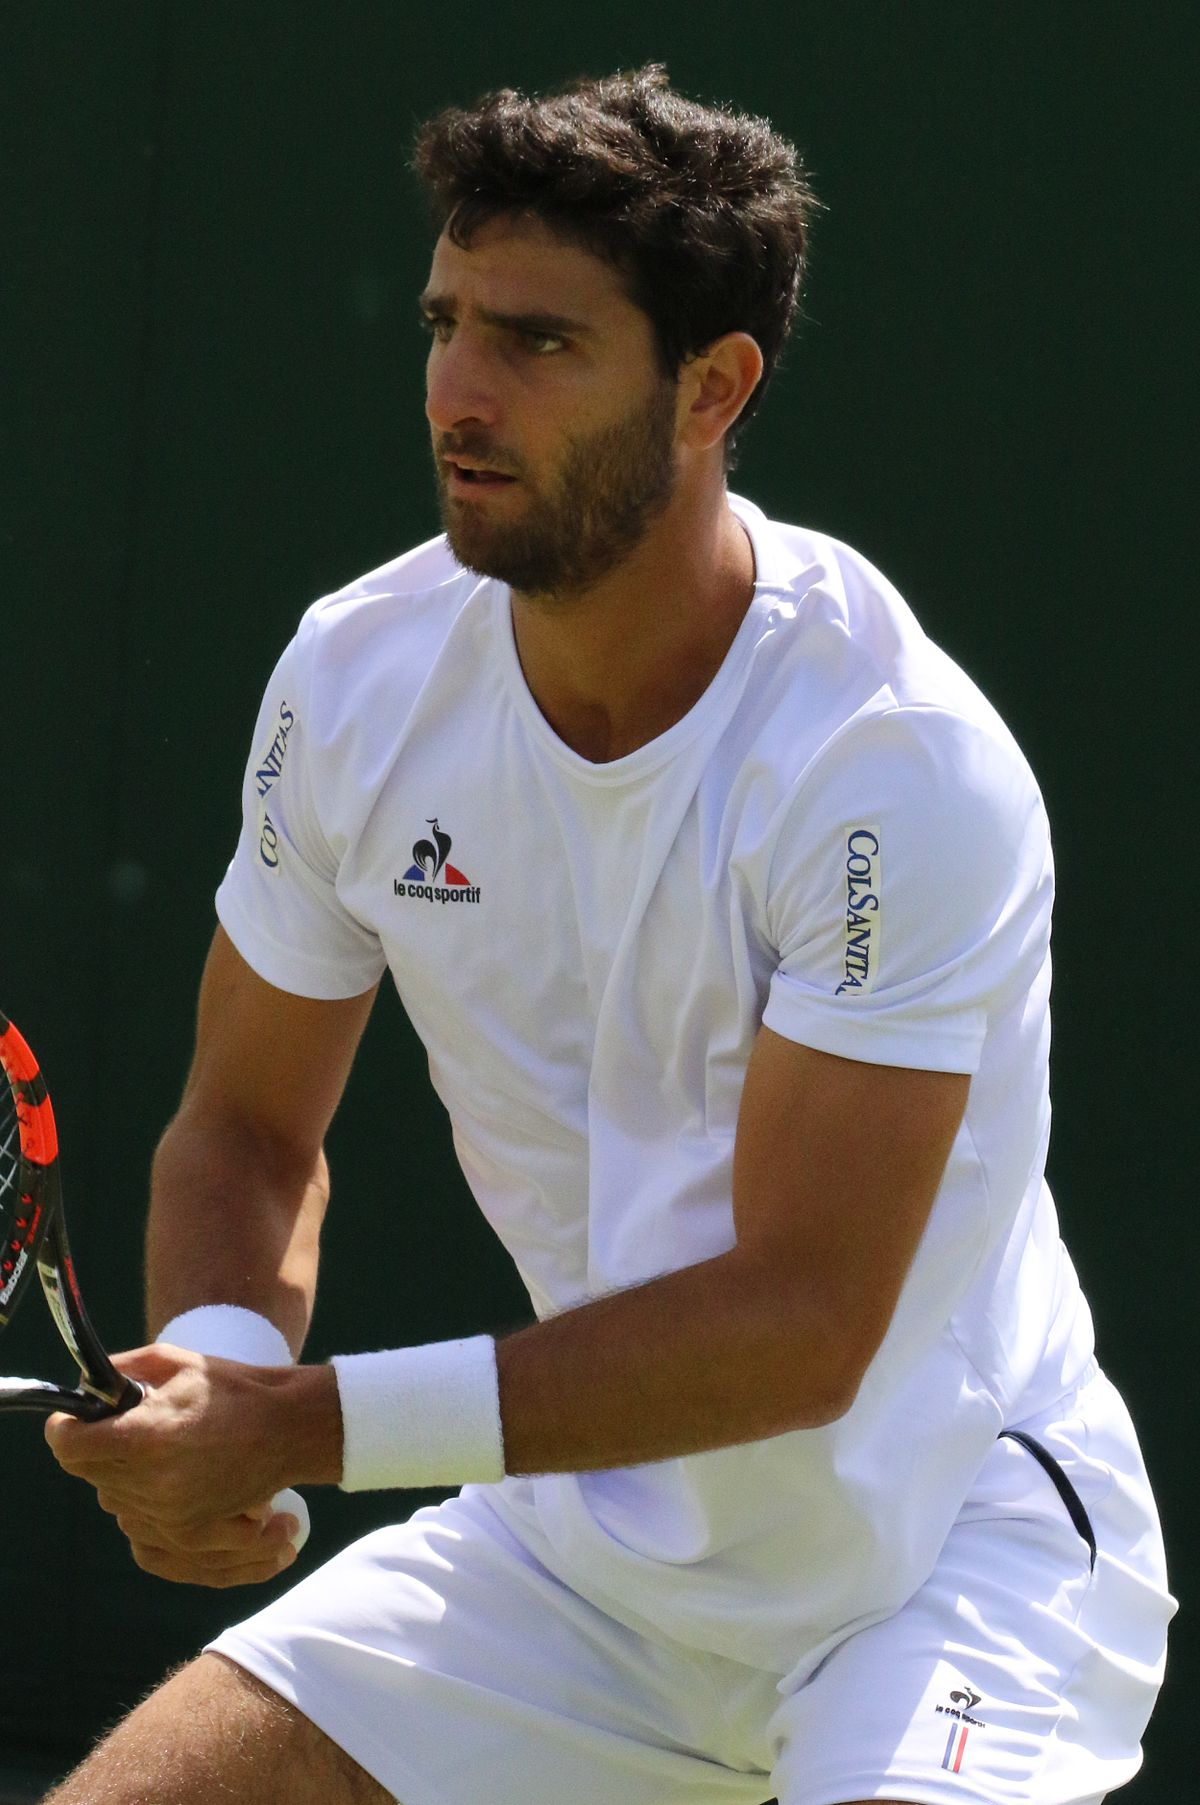 Robert Farah Wikipedia